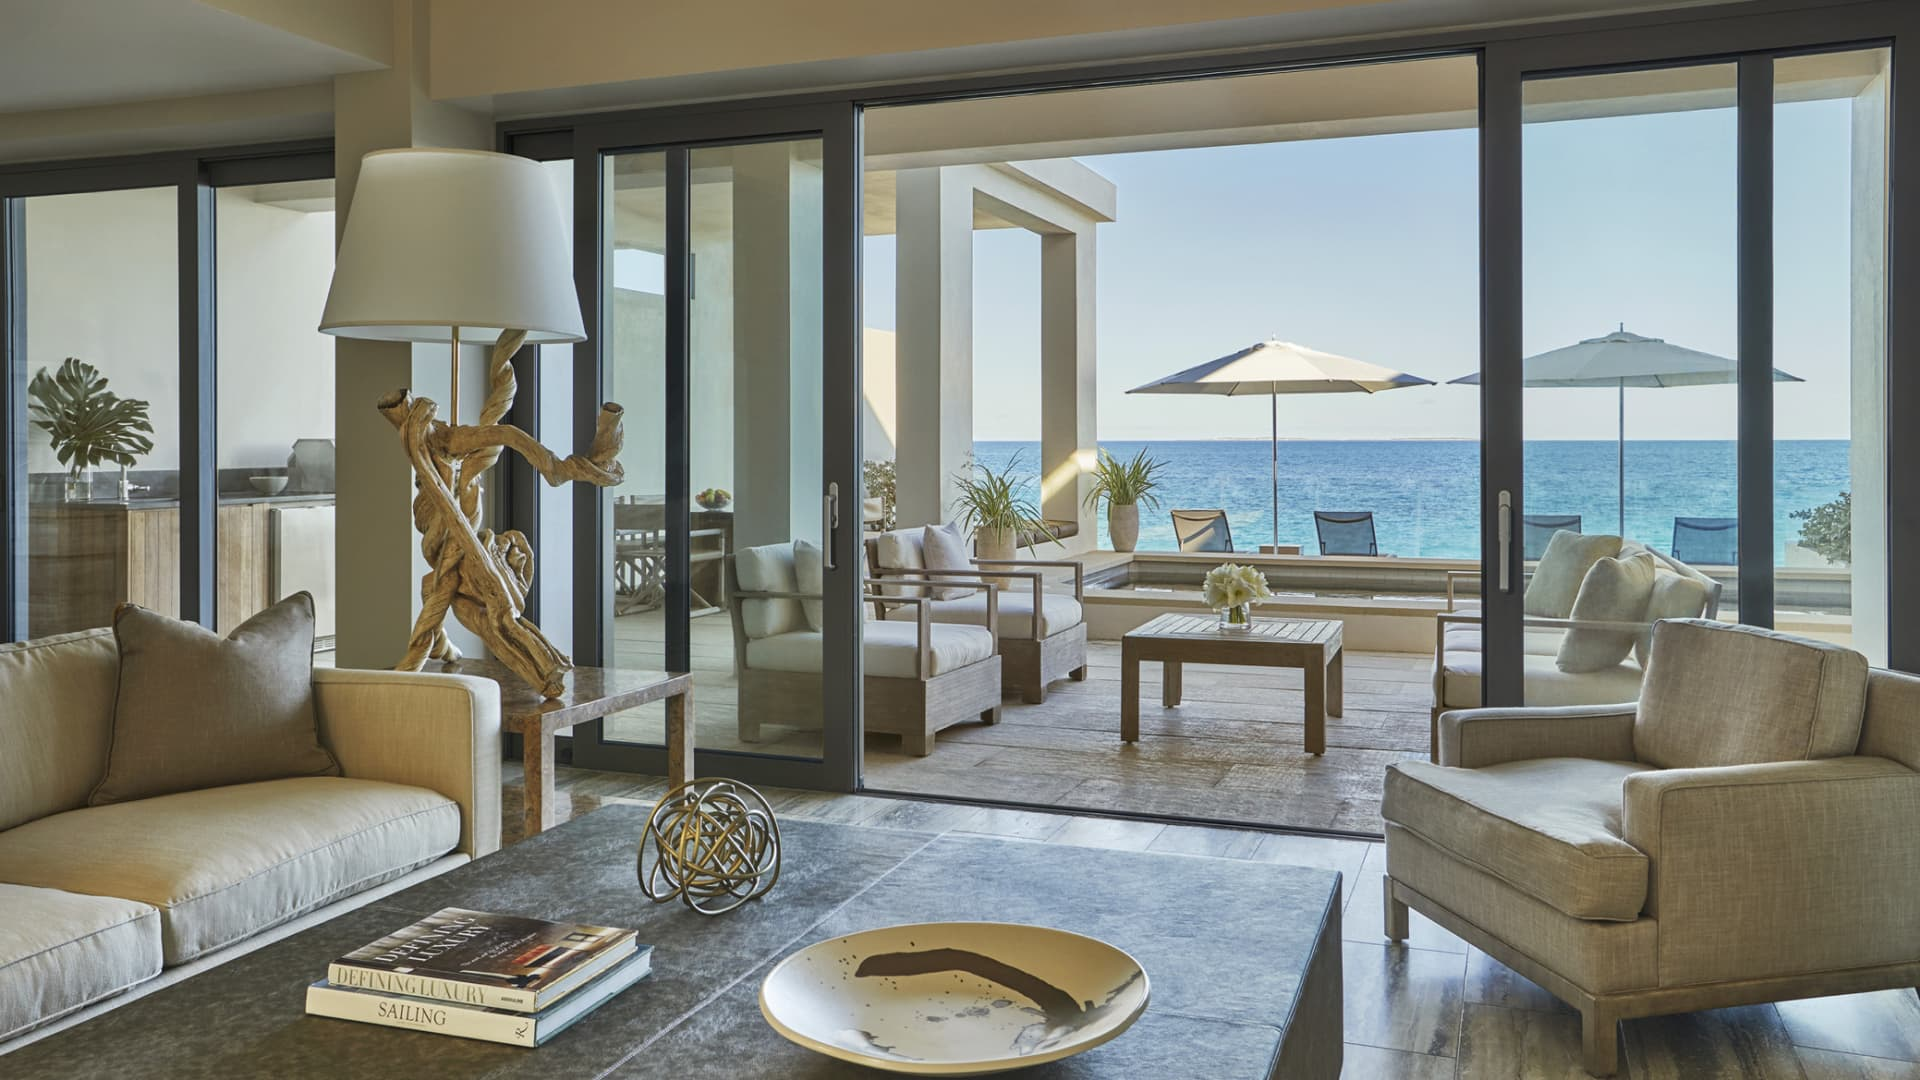 Perks are available for guests who book for 30 days or more at Four Seasons Resort and Residences Anguilla.